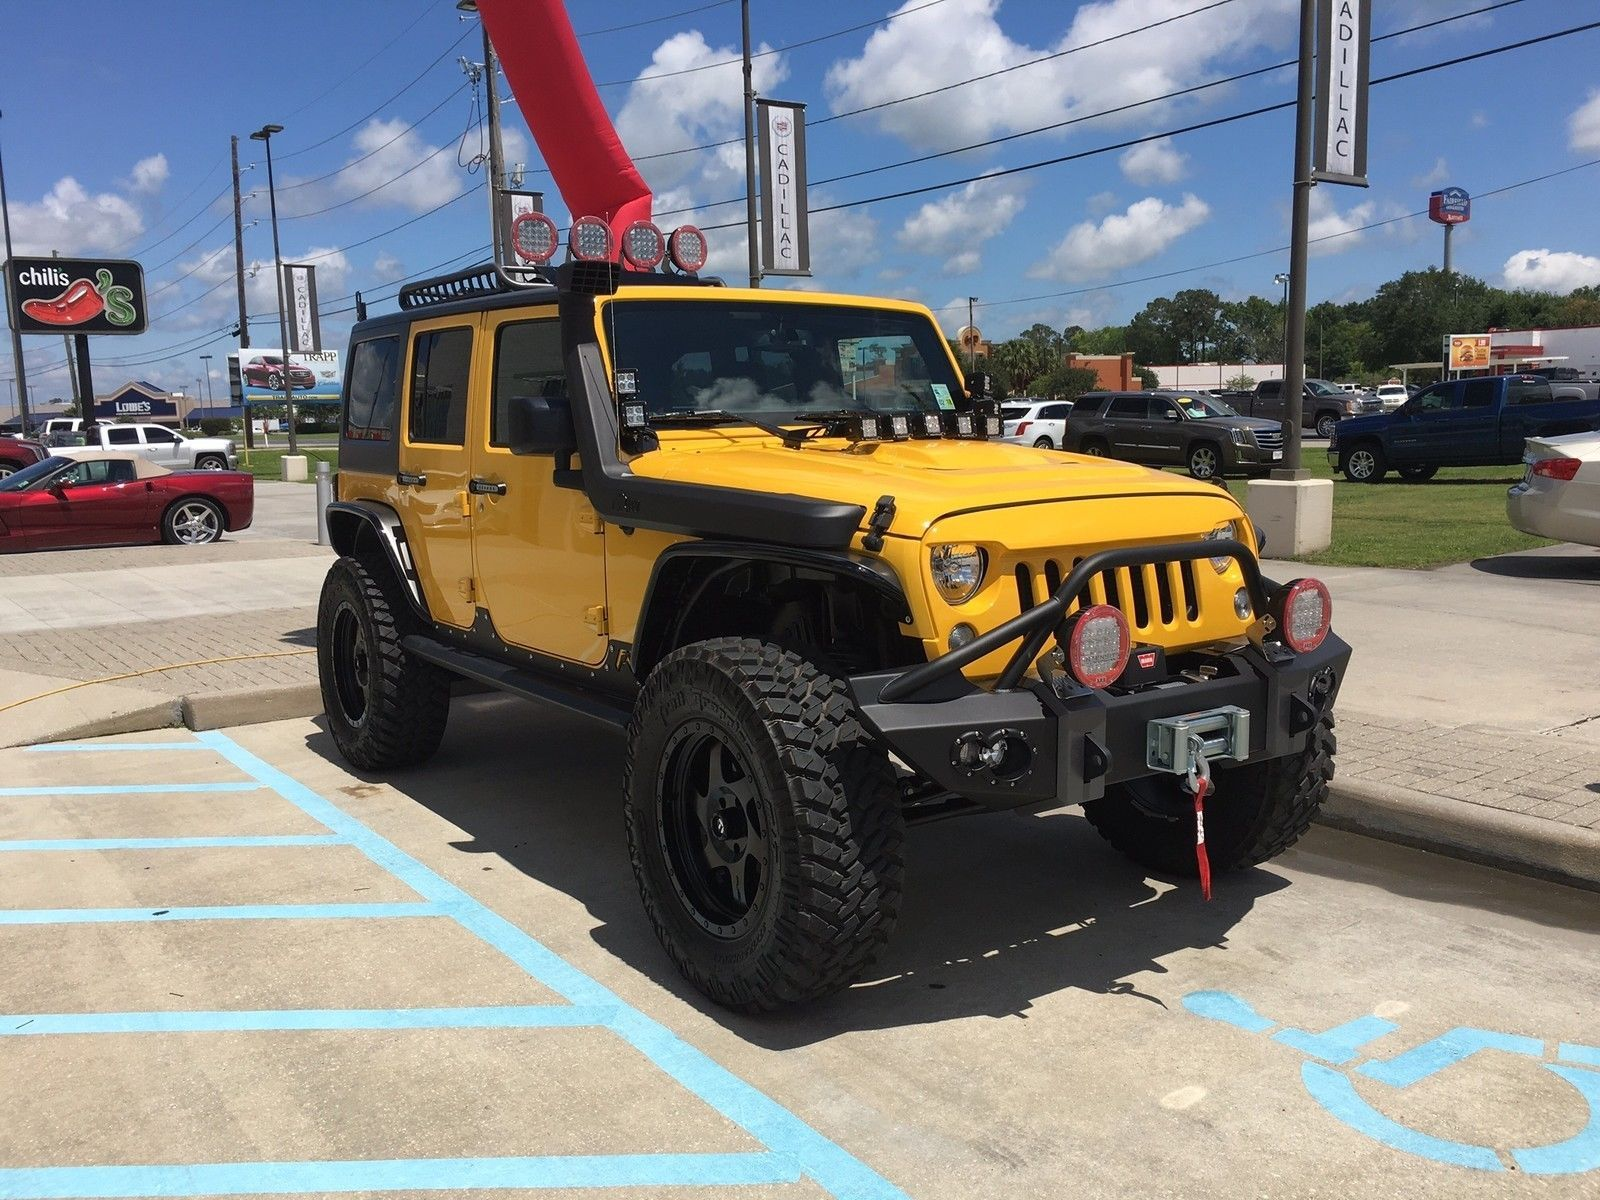 Car Brand Auctionedjeep Wrangler Unlimited Rubicon 2015 Model Jeep Door View 4 Customized Only 625 Miles Wd